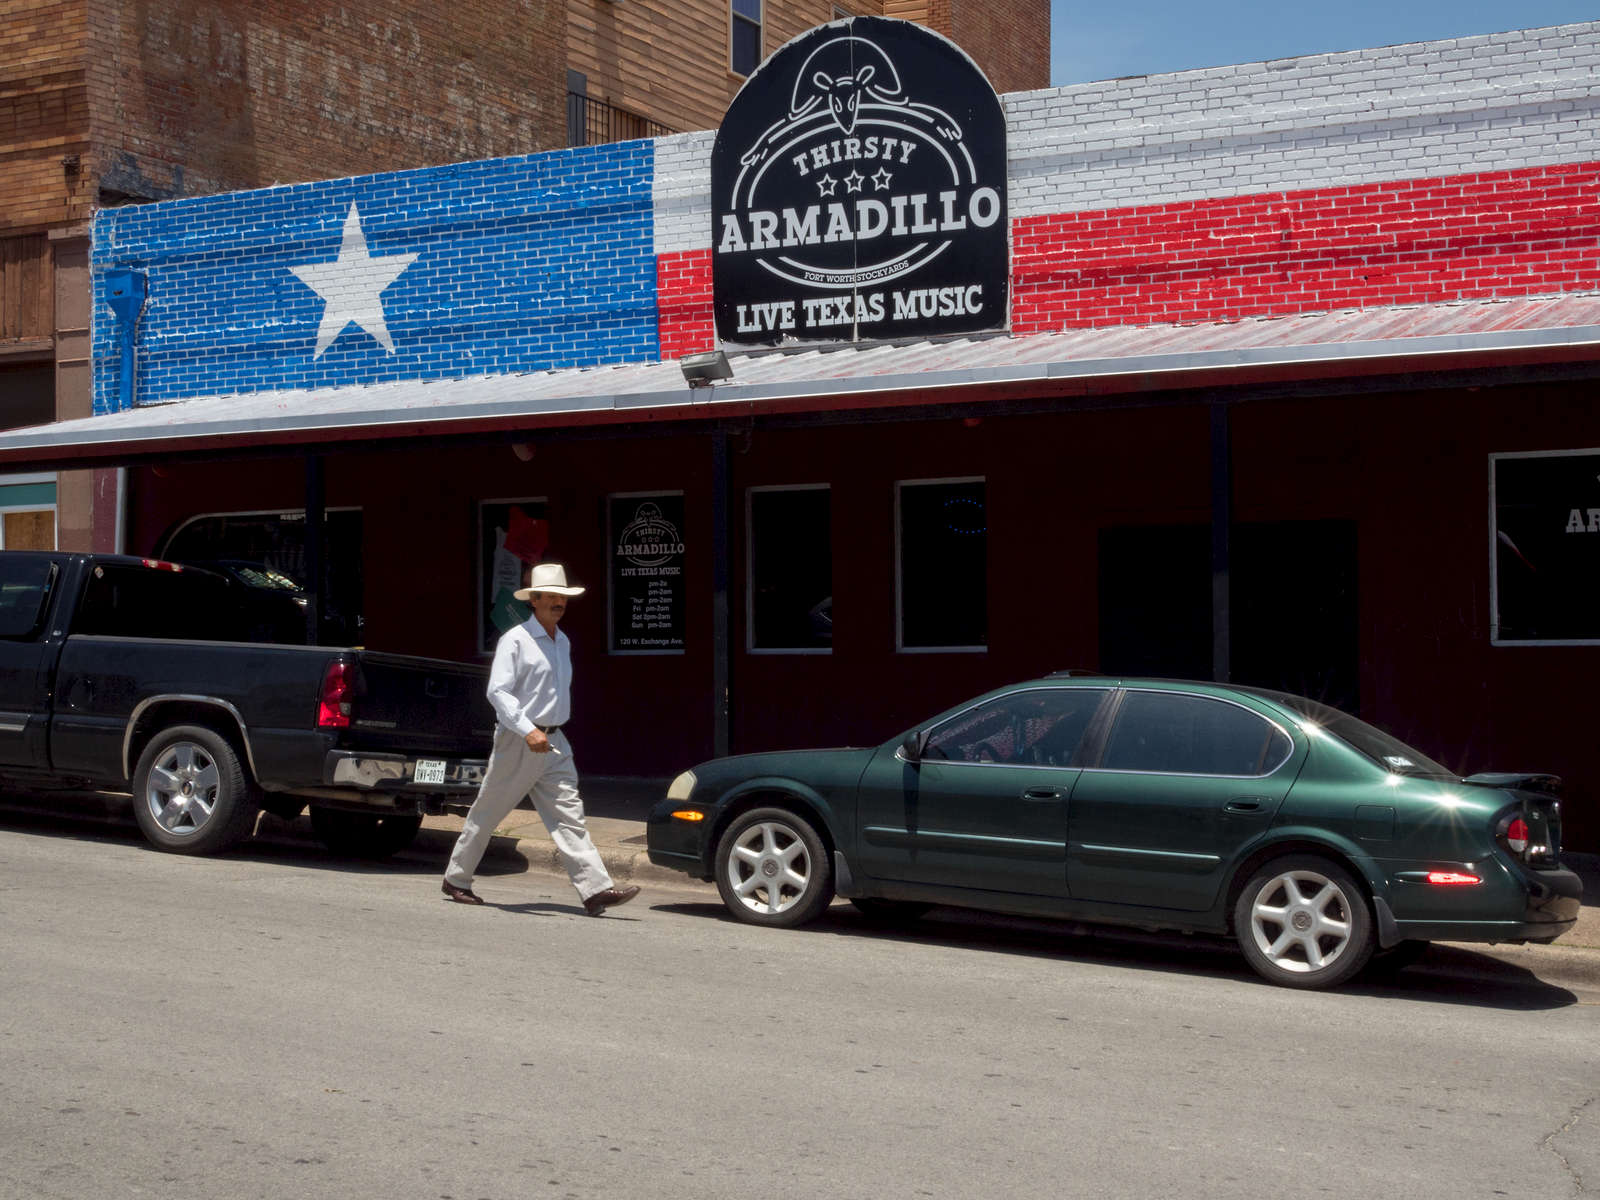 A man walks past the Armadillo bar on West Exchange Avenue, Stockyards, Fort Worth.The Fort Worth Stockyards is a historic district that is located in Fort Worth, Texas, north of the central business district. The 98-acre (40 ha) district was listed on the National Register of Historic Places as Fort Worth Stockyards Historic District in 1976.They are a former livestock market which operated under various owners from 1866.Dallas is a major city in Texas and is the largest urban center of the fourth most populous metropolitan area in the United States. The city ranks ninth in the U.S. and third in Texas after Houston and San Antonio. The city's prominence arose from its historical importance as a center for the oil and cotton industries, and its position along numerous railroad lines.For two weeks in the summer of 2015, photographer Peter Dench visited Dallas to document the metroplex in his epic reportage, DENCH DOES DALLAS.Photographed using an Olympus E-M5 Mark II©Peter Dench/Getty Images Reportage